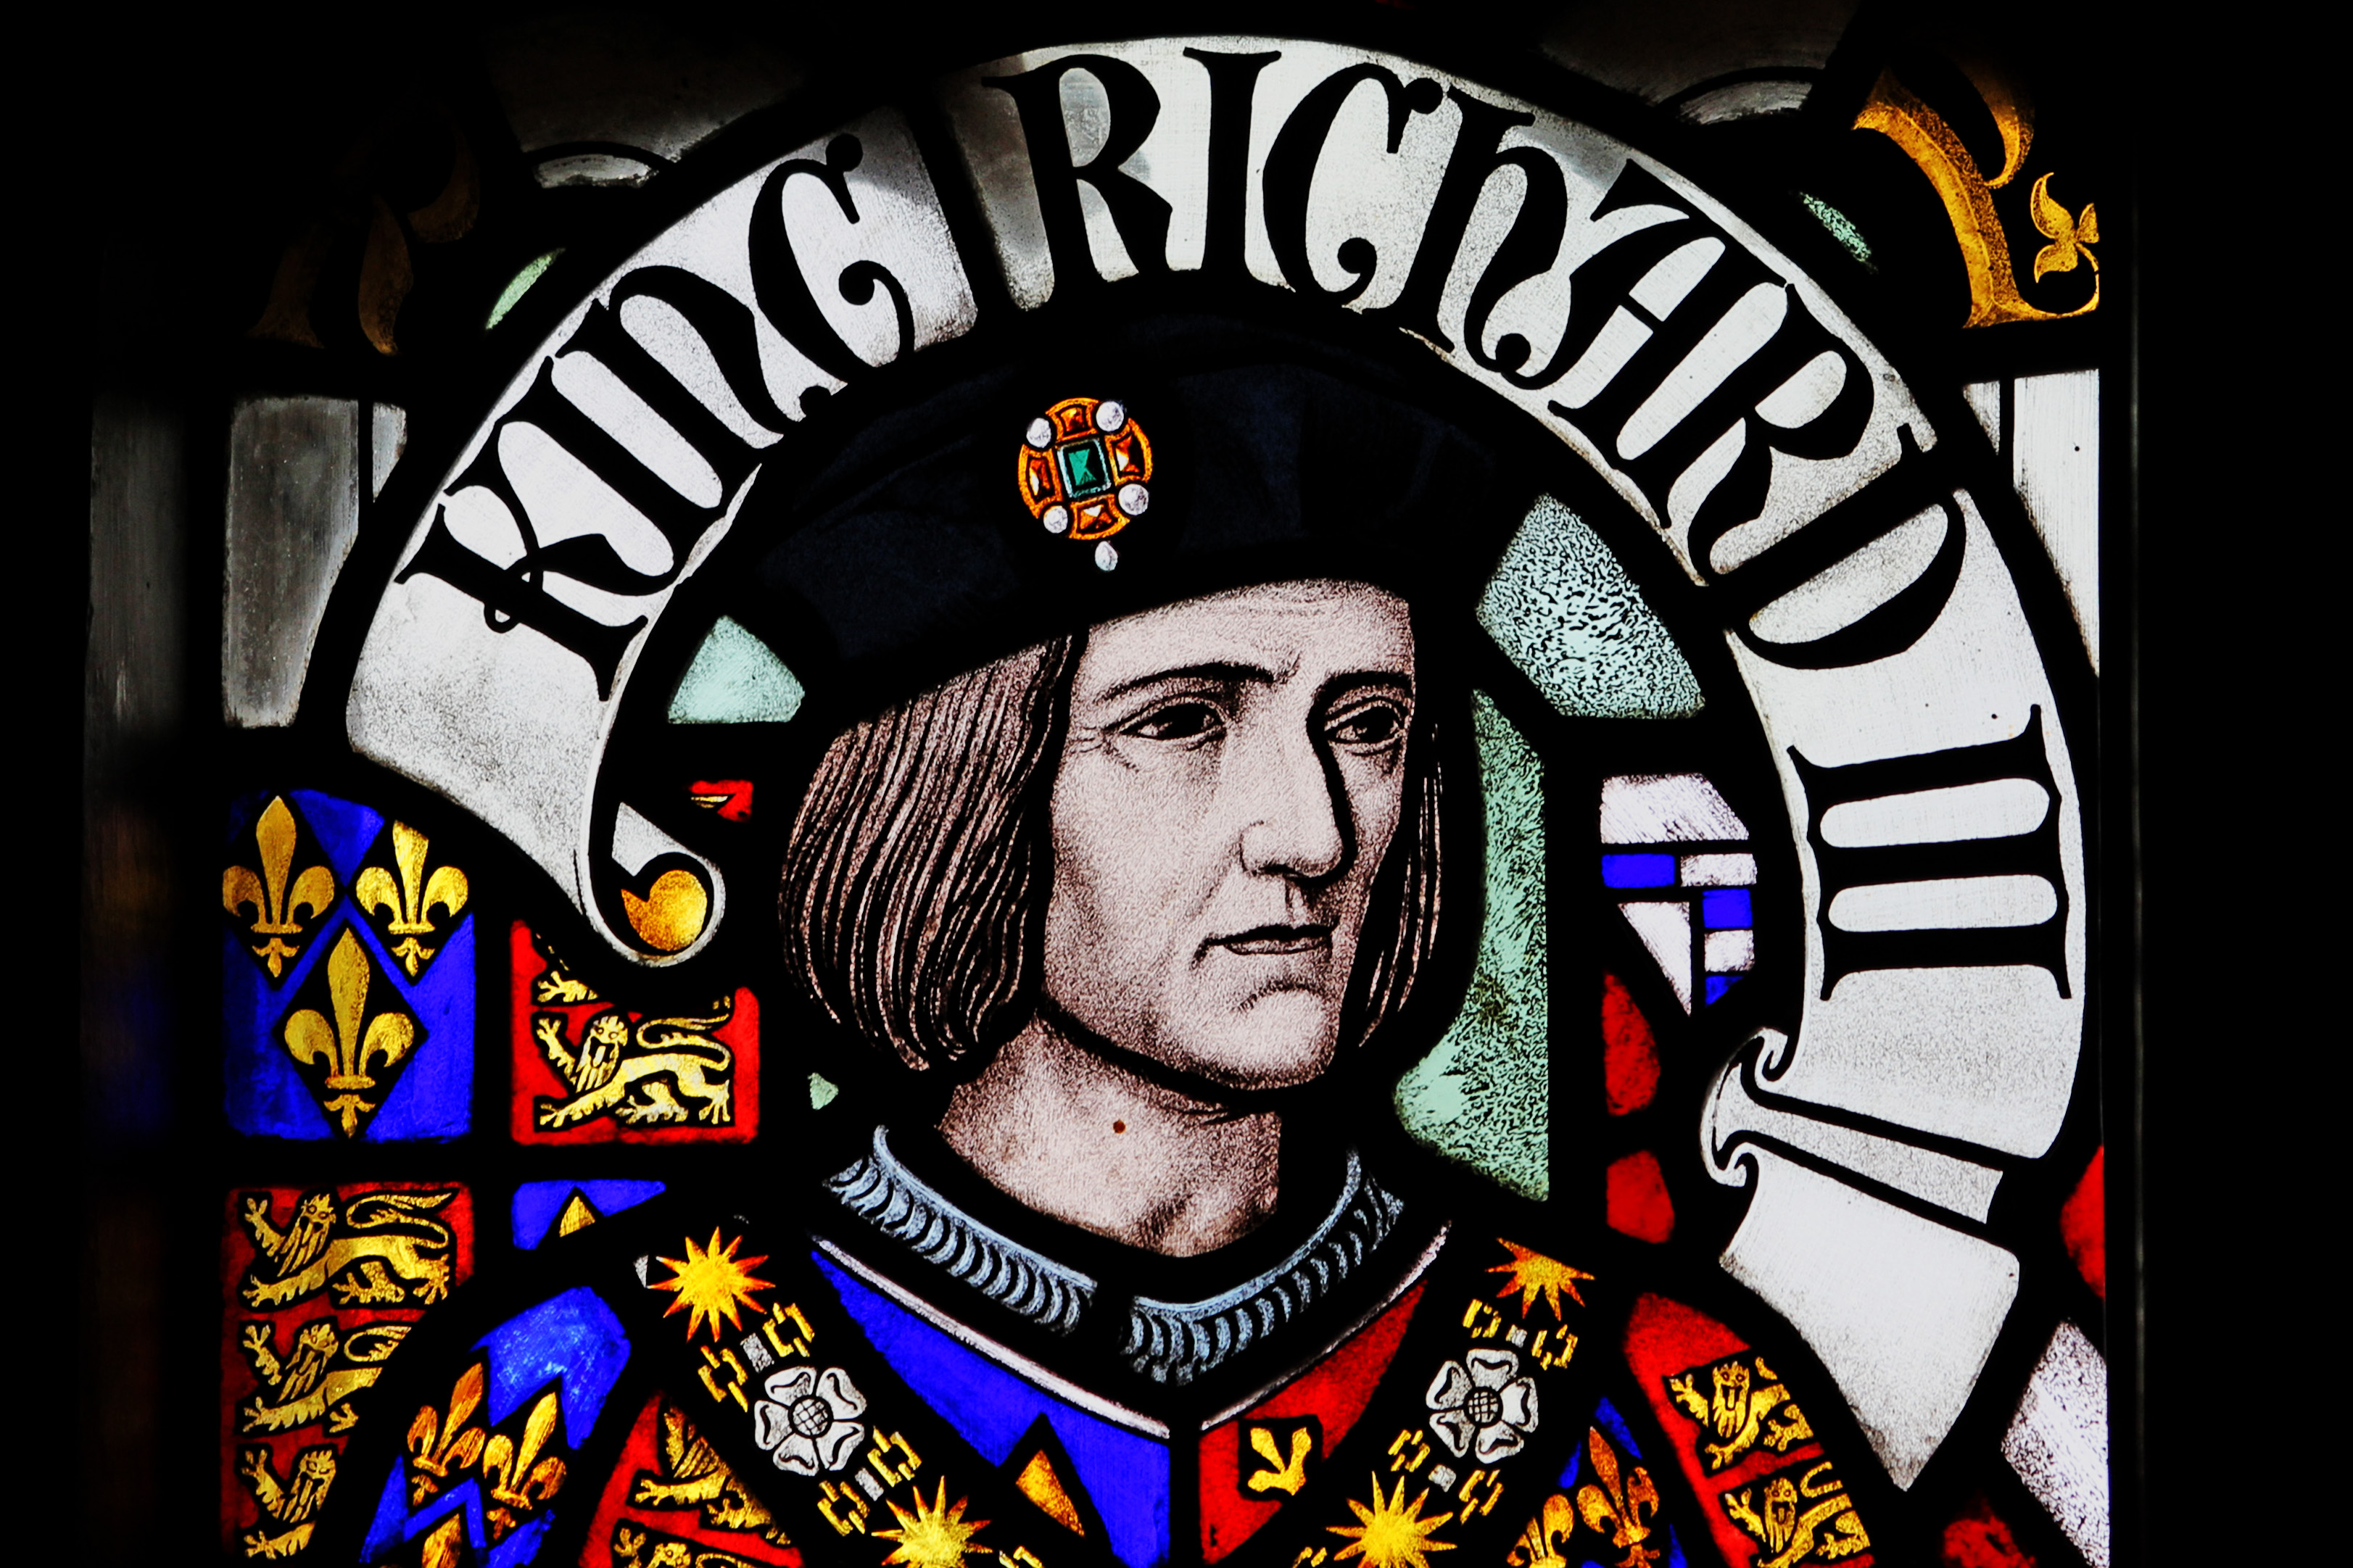 richard iii A summary of act i, scene i in william shakespeare's richard iii learn exactly what happened in this chapter, scene, or section of richard iii and what it means.